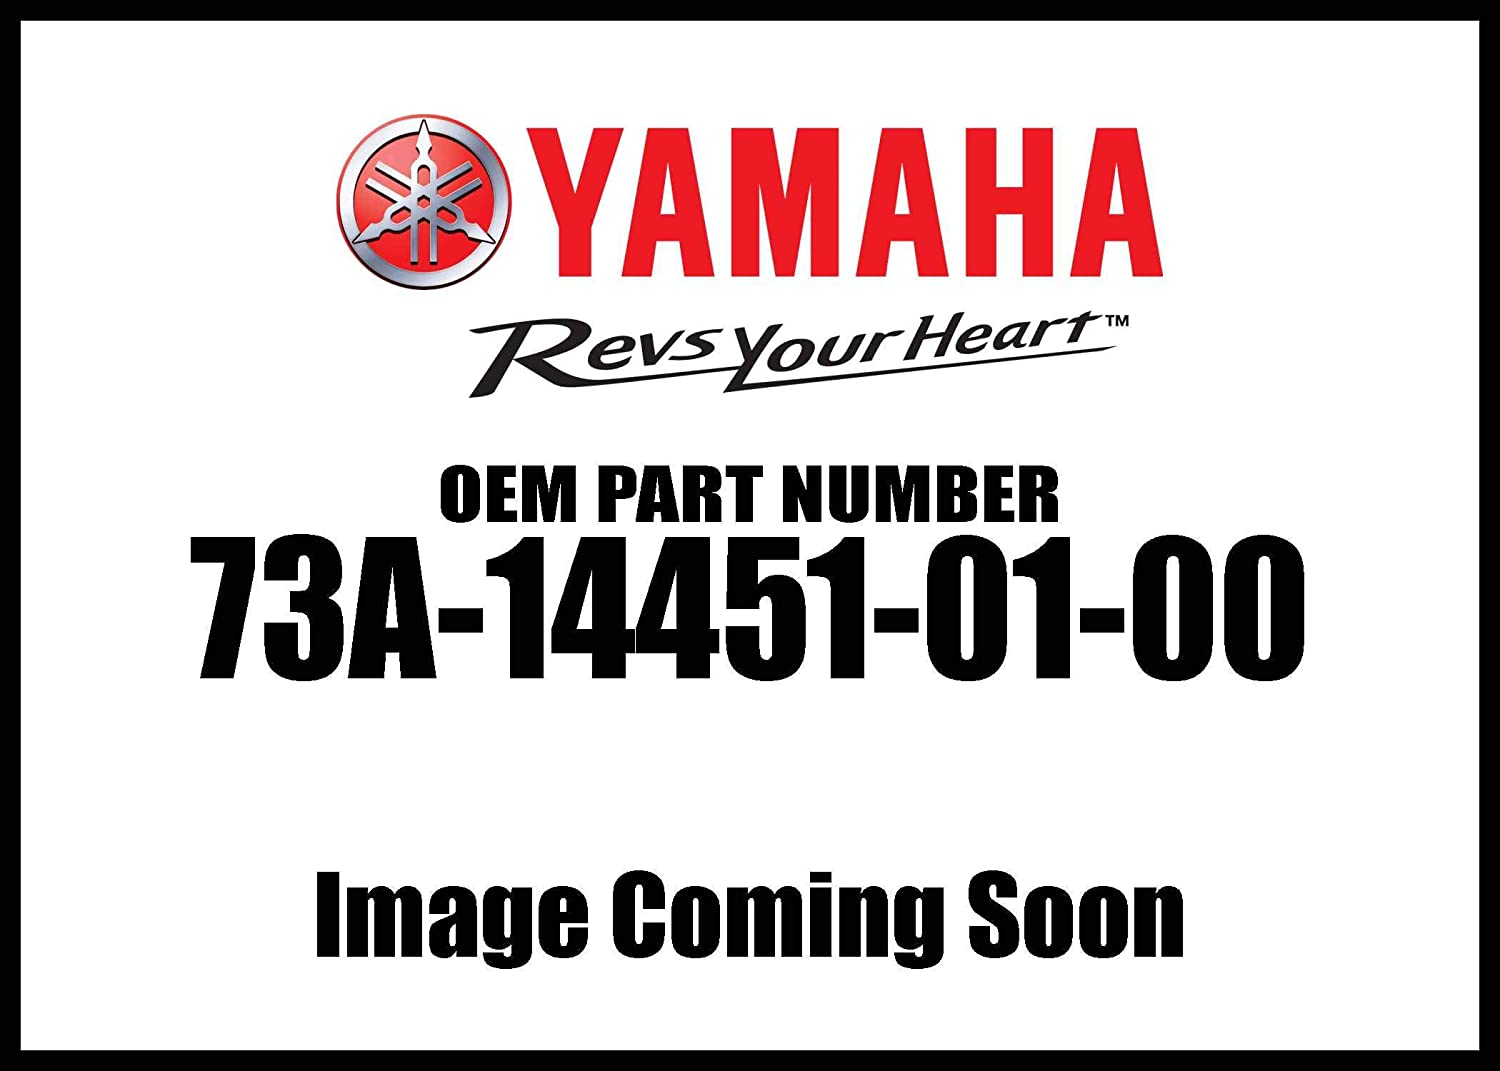 Yamaha 73A-14451-01-00 Sale Special Price Element Air Cleaner; b favorite 73A144510100 Made